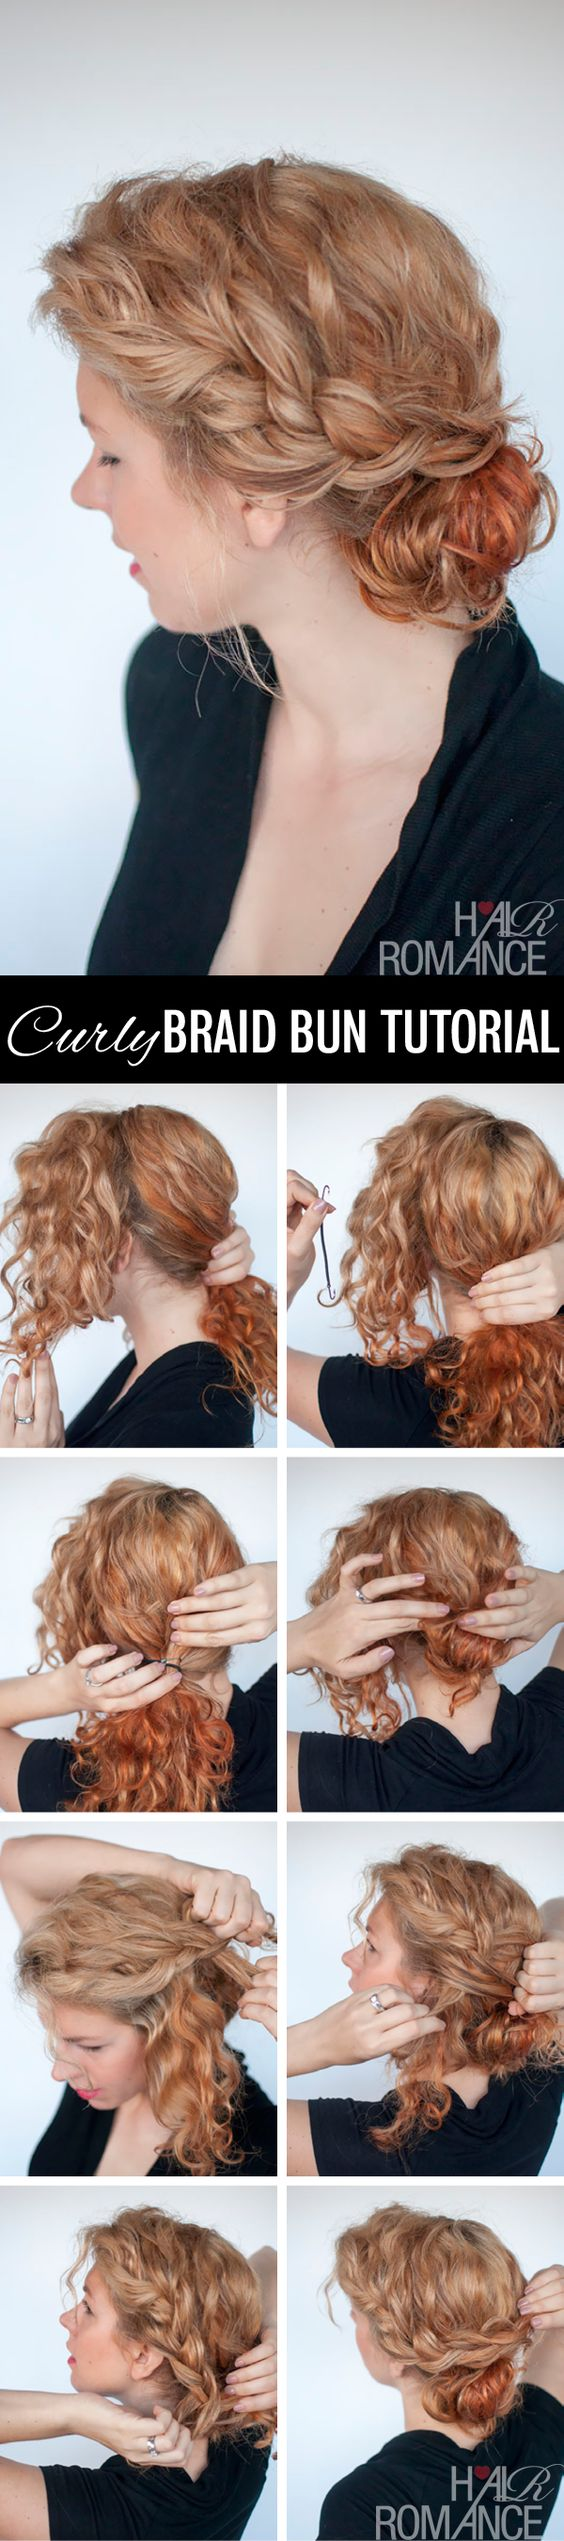 Curly bun hairstyle tutorial – two ways Love this.. curly hair is hard to style